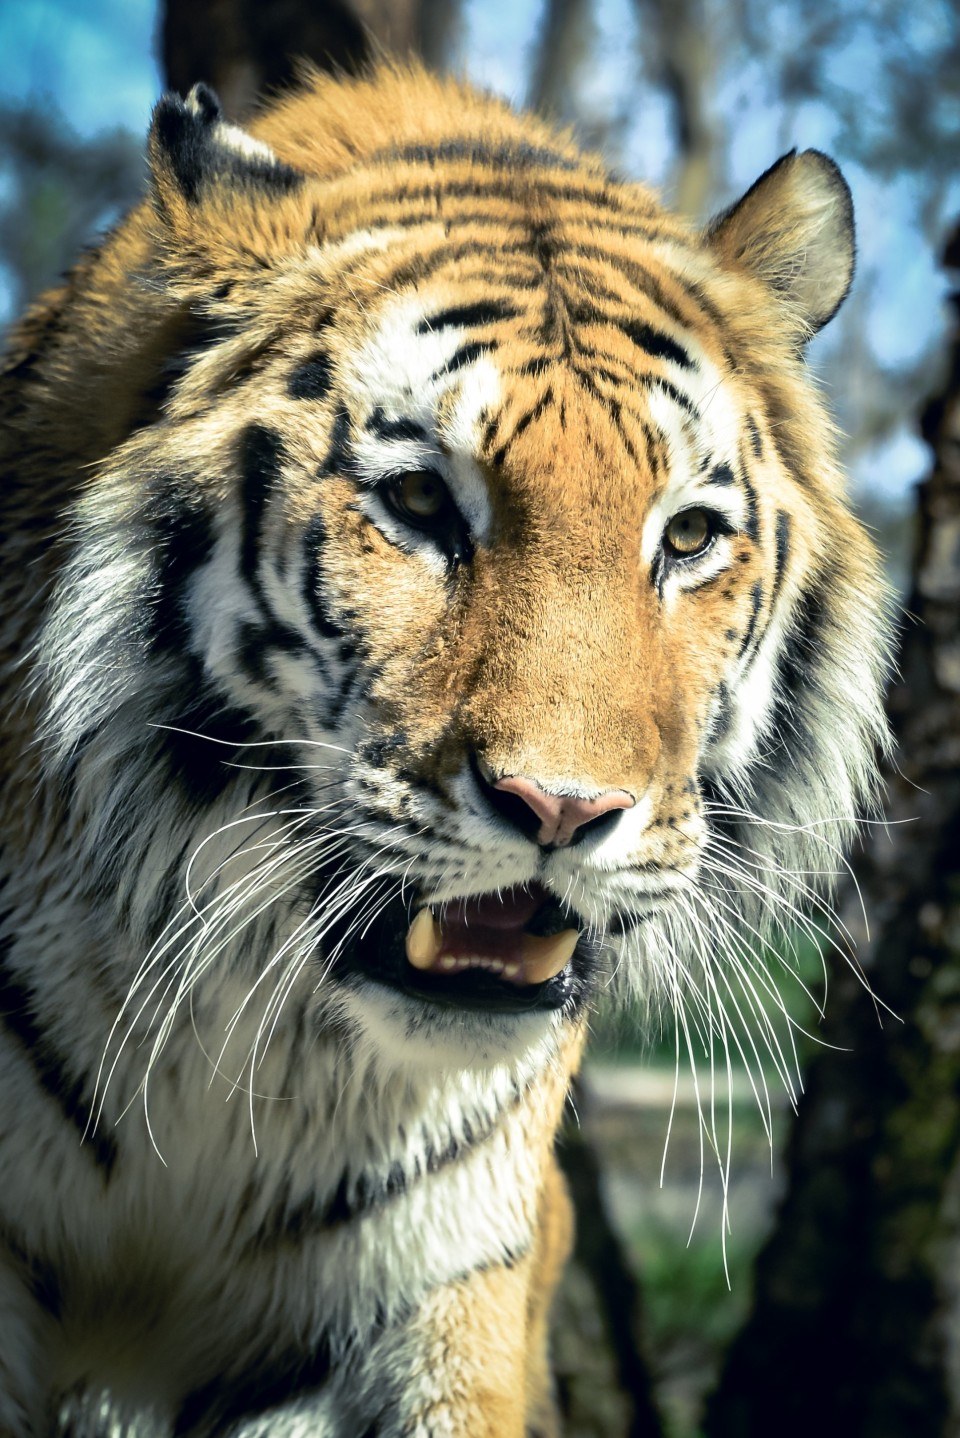 http://humanstories.photography/wp-content/uploads/2015/05/tiger-005-copy-e1431313008347-960x1438_c.jpg